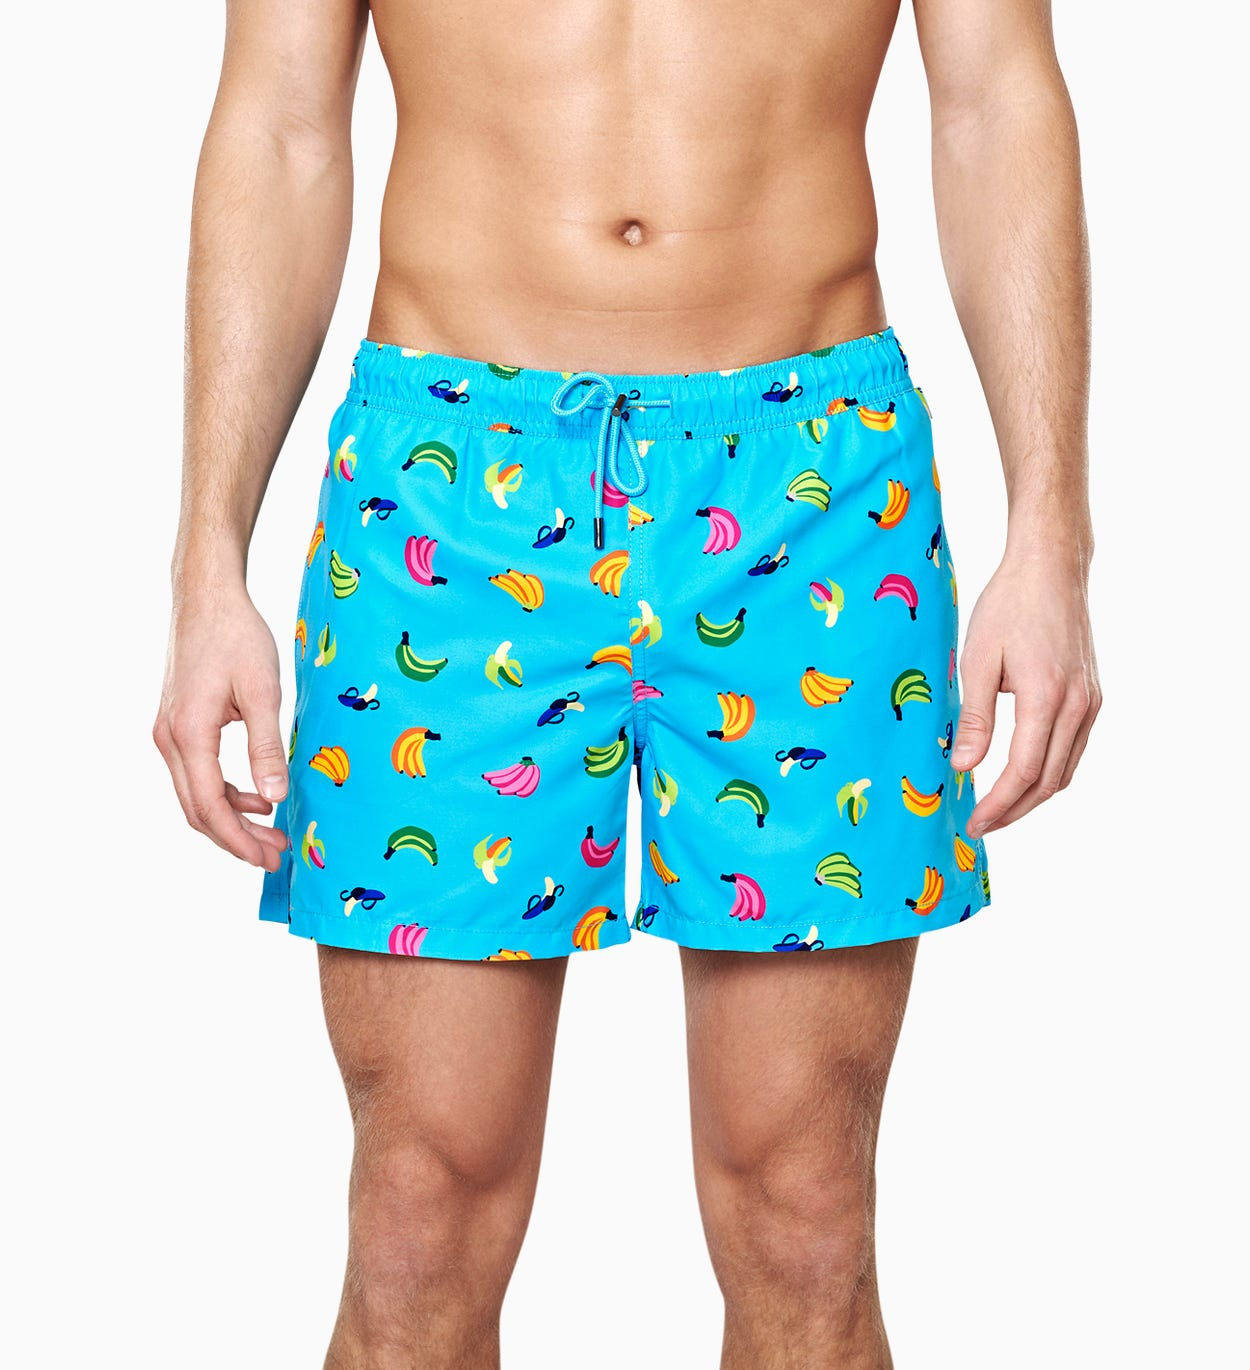 Banana Swim Shorts, Blue | Happy Socks